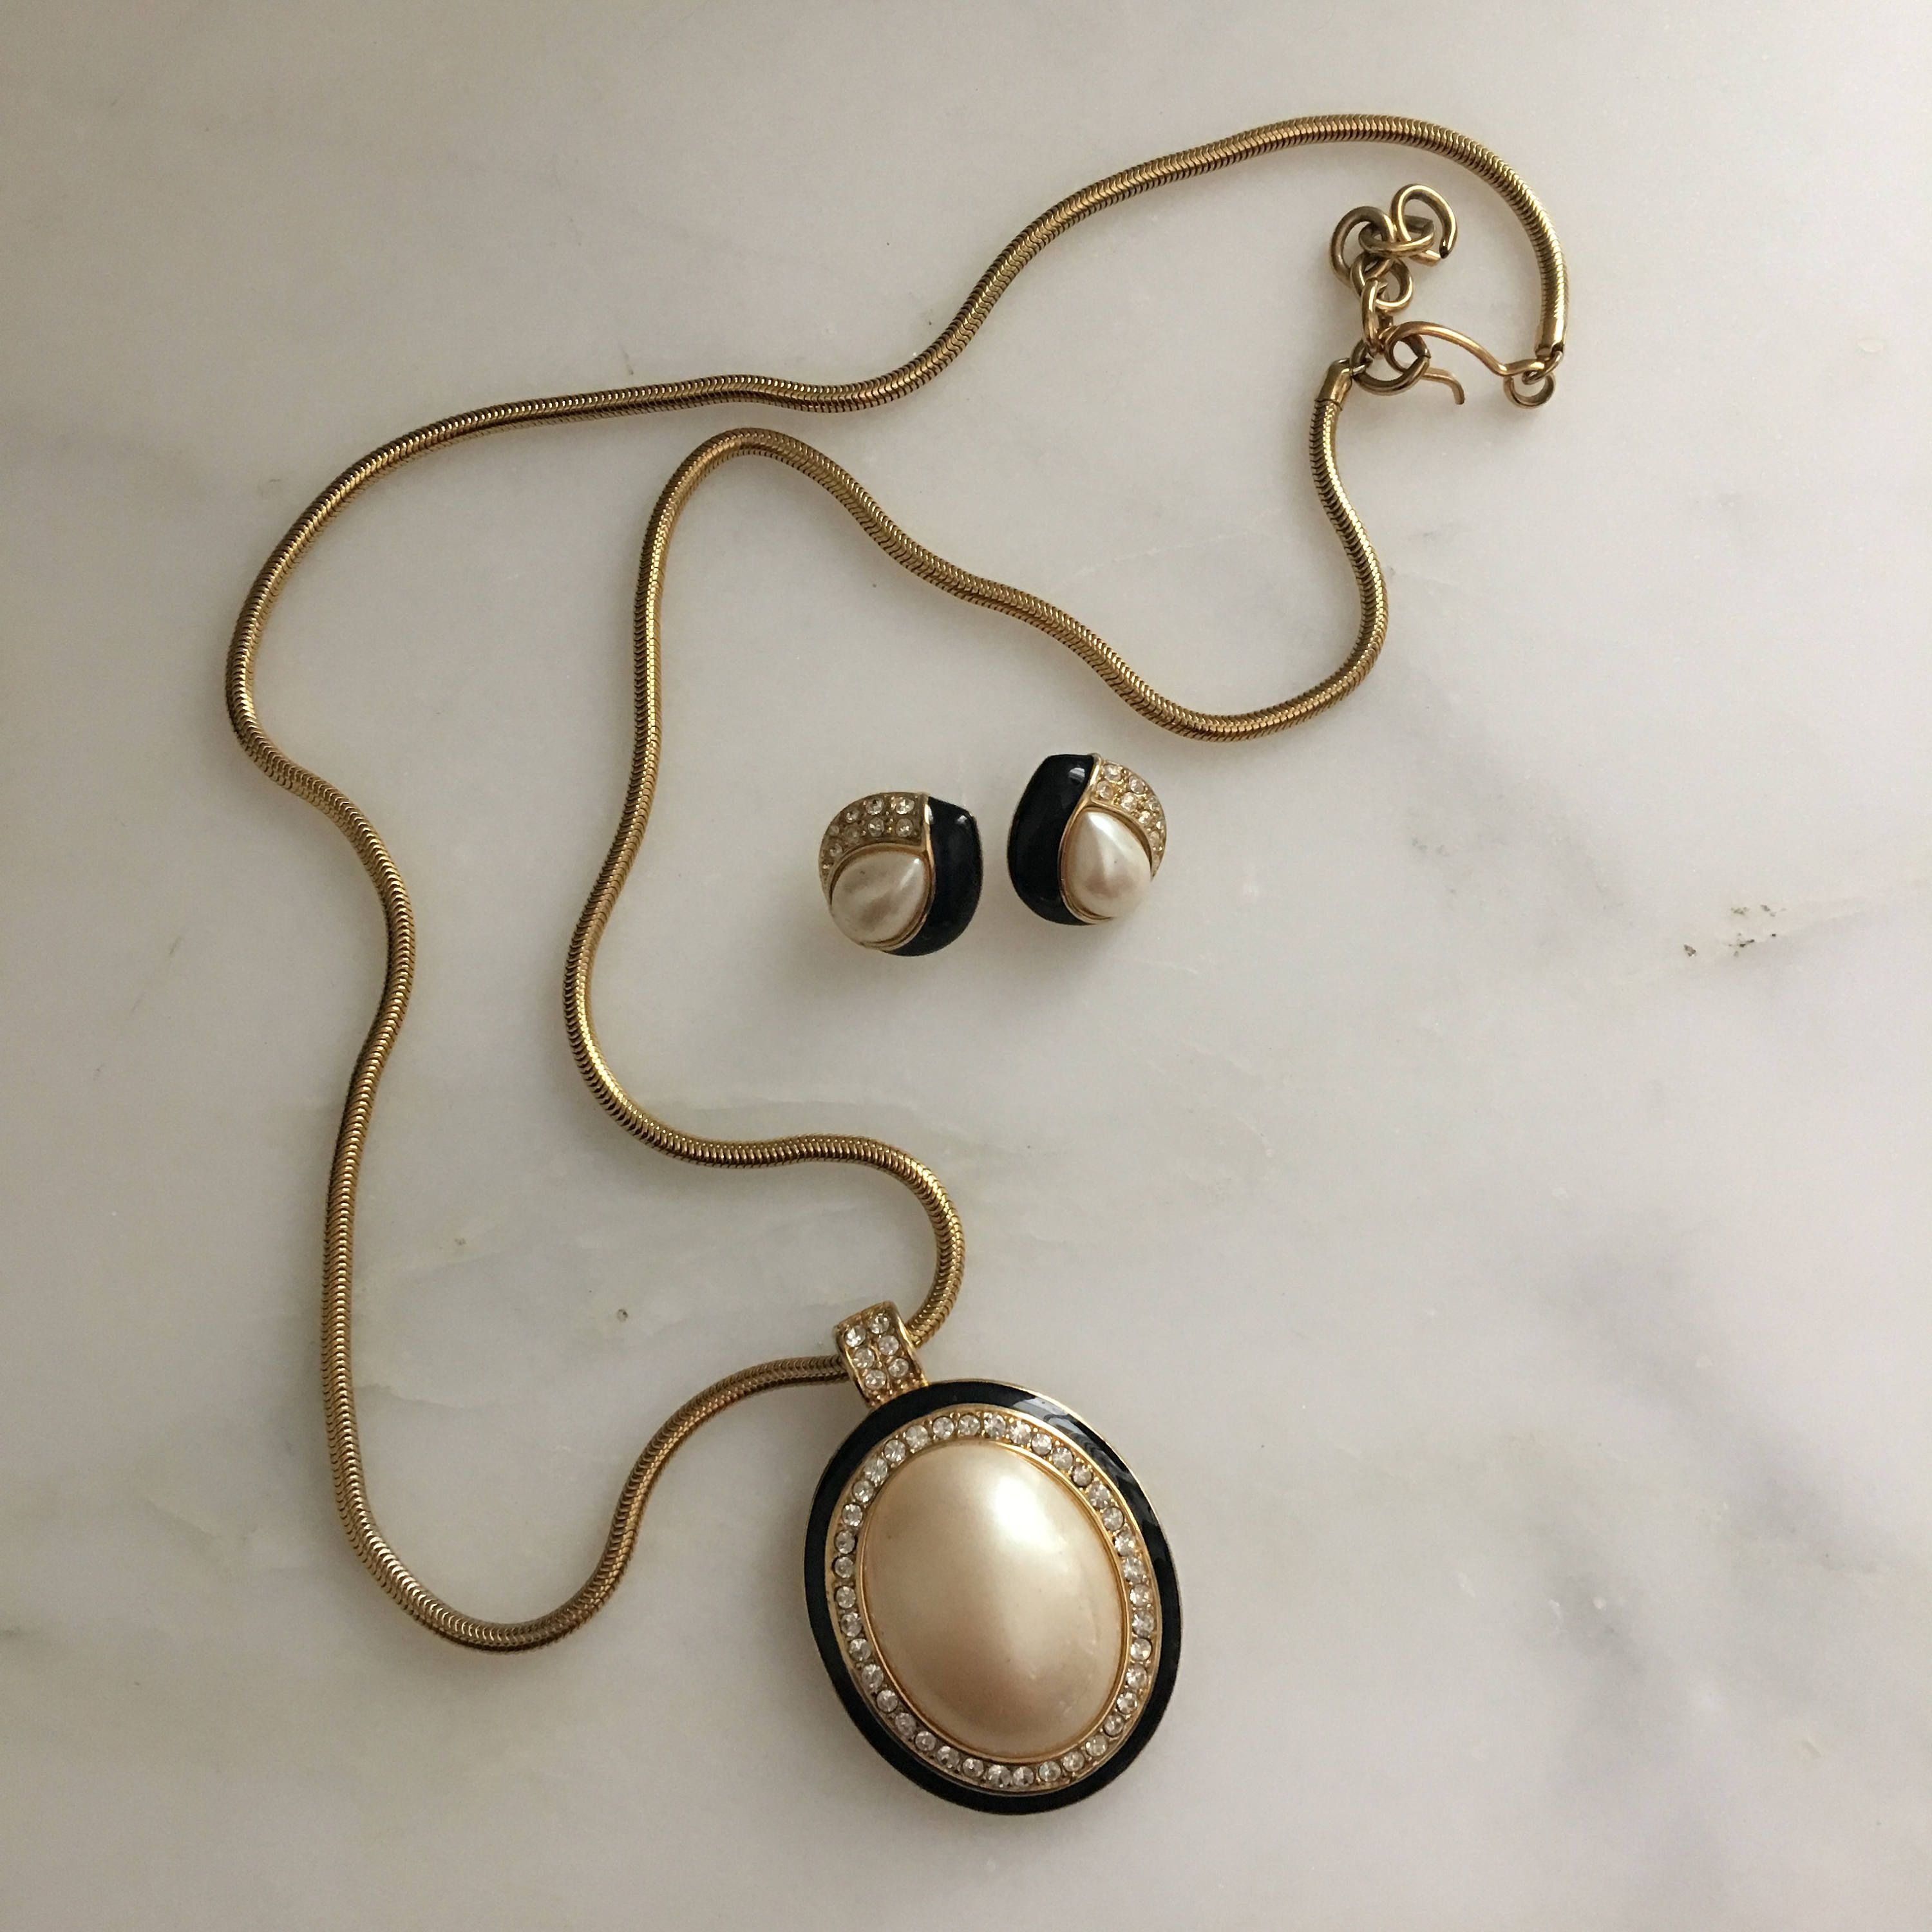 Vintage monet cabochon pearl pendant necklace and earrings us